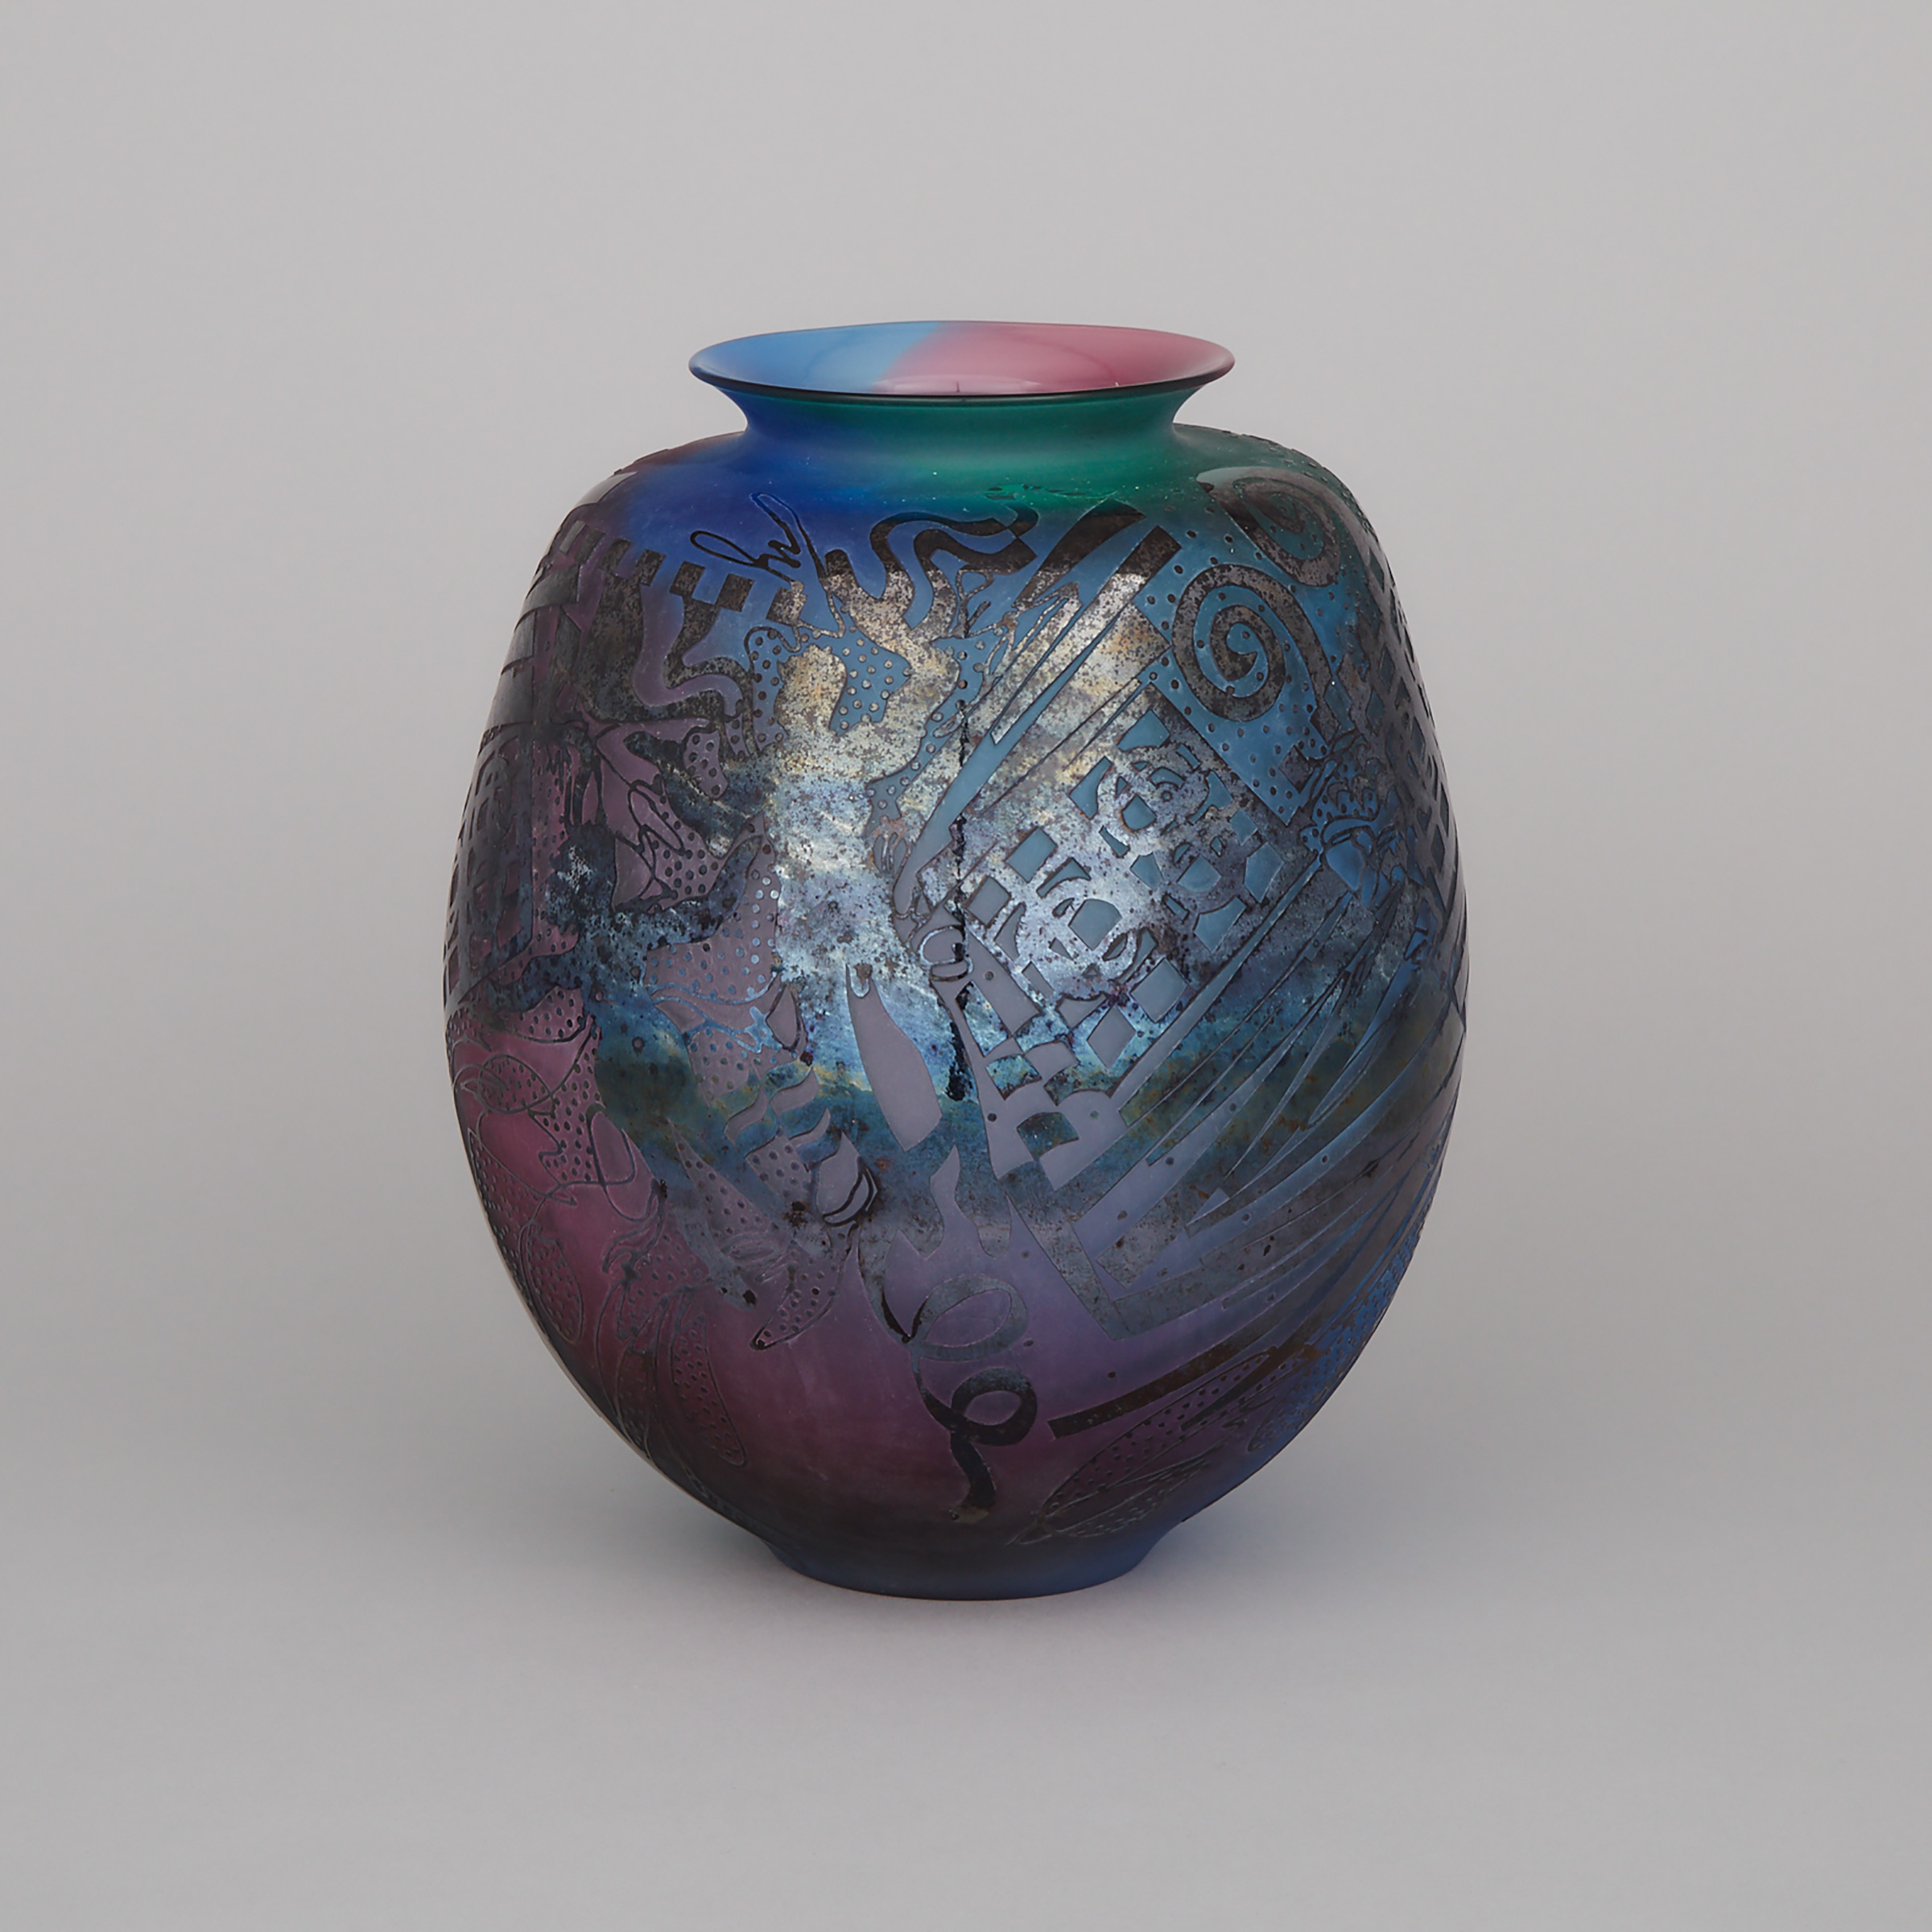 Heather Wood (Canadian, b.1953) and John Kepkiewicz (Canadian, b.1955), 'Division', Acid Etched Glass Vase, 1989